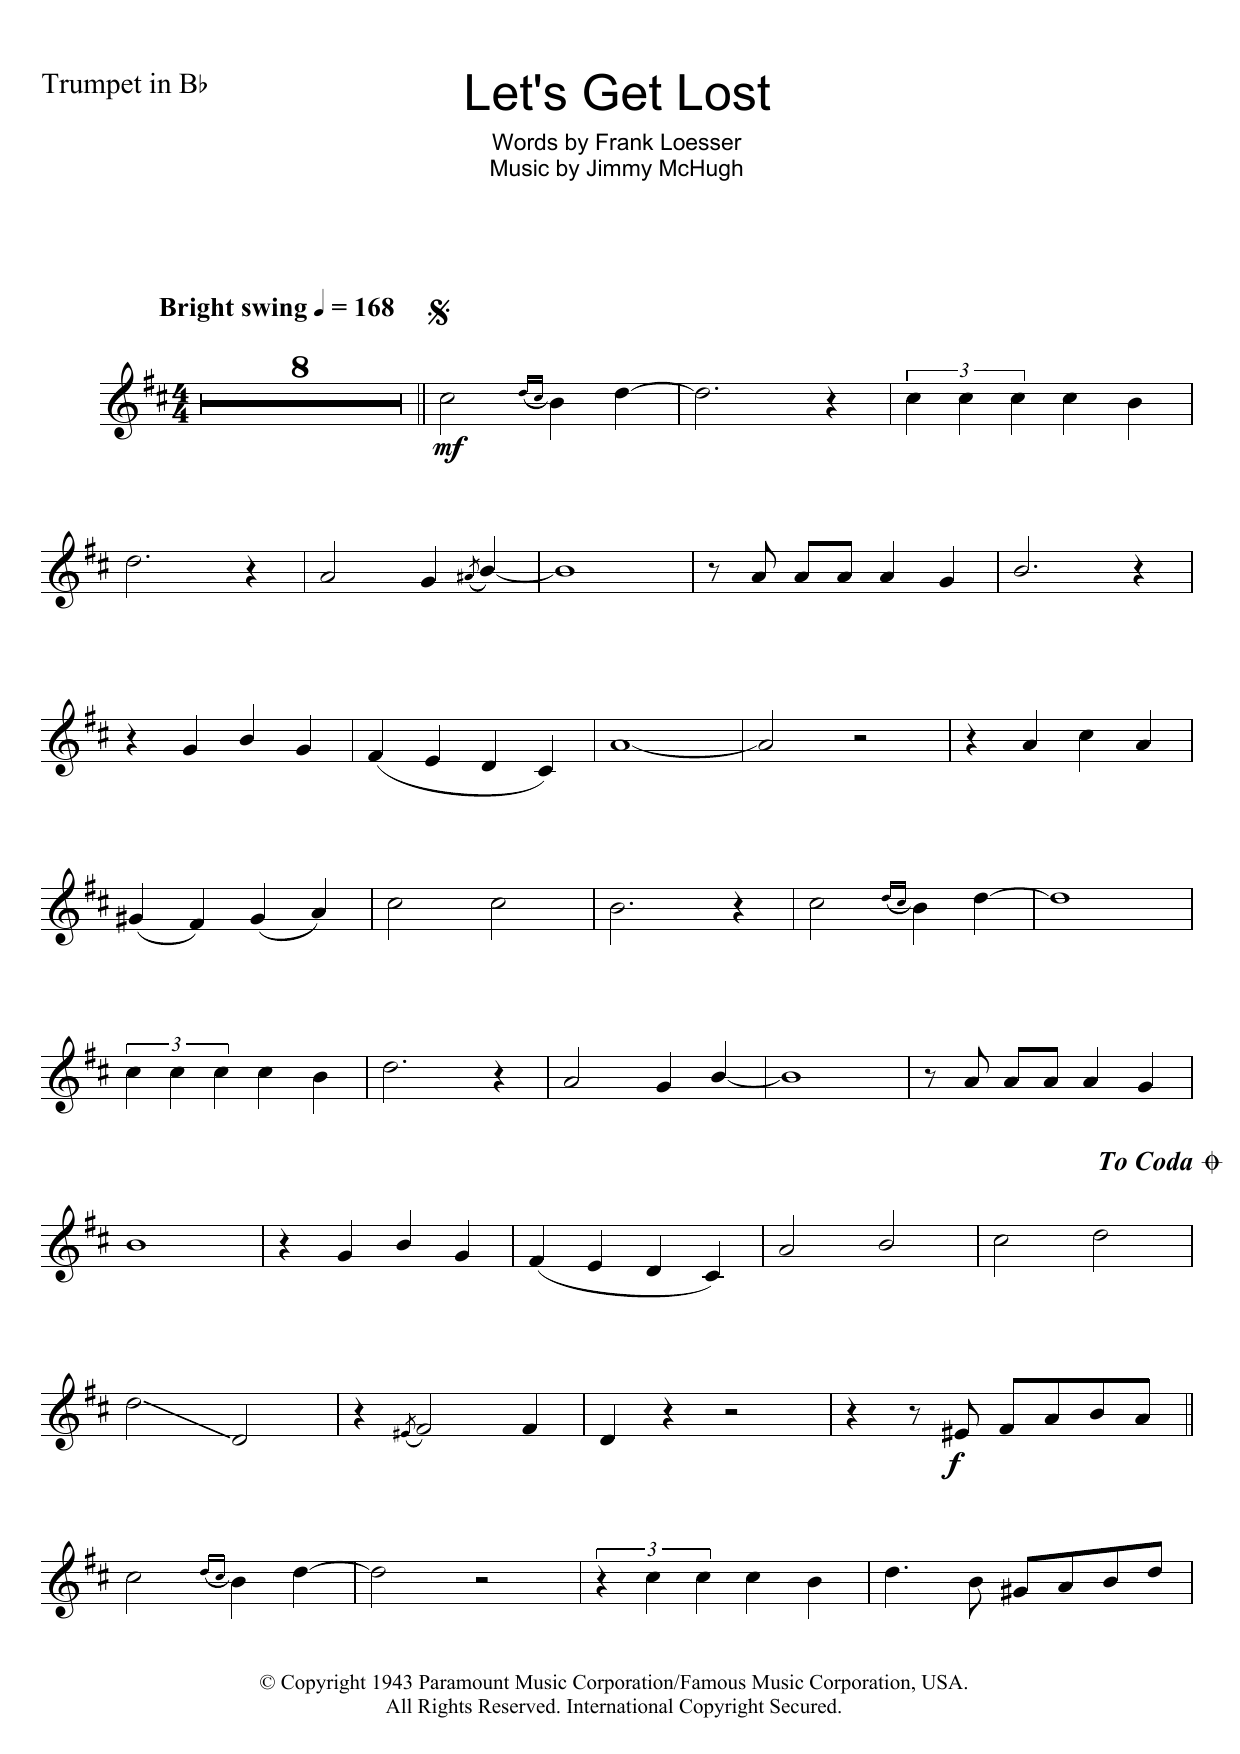 image about Let It Be Piano Sheet Music Free Printable referred to as Makes it possible for Acquire Dropped by way of Chet Baker Piano, Vocal Guitar Electronic Sheet Audio